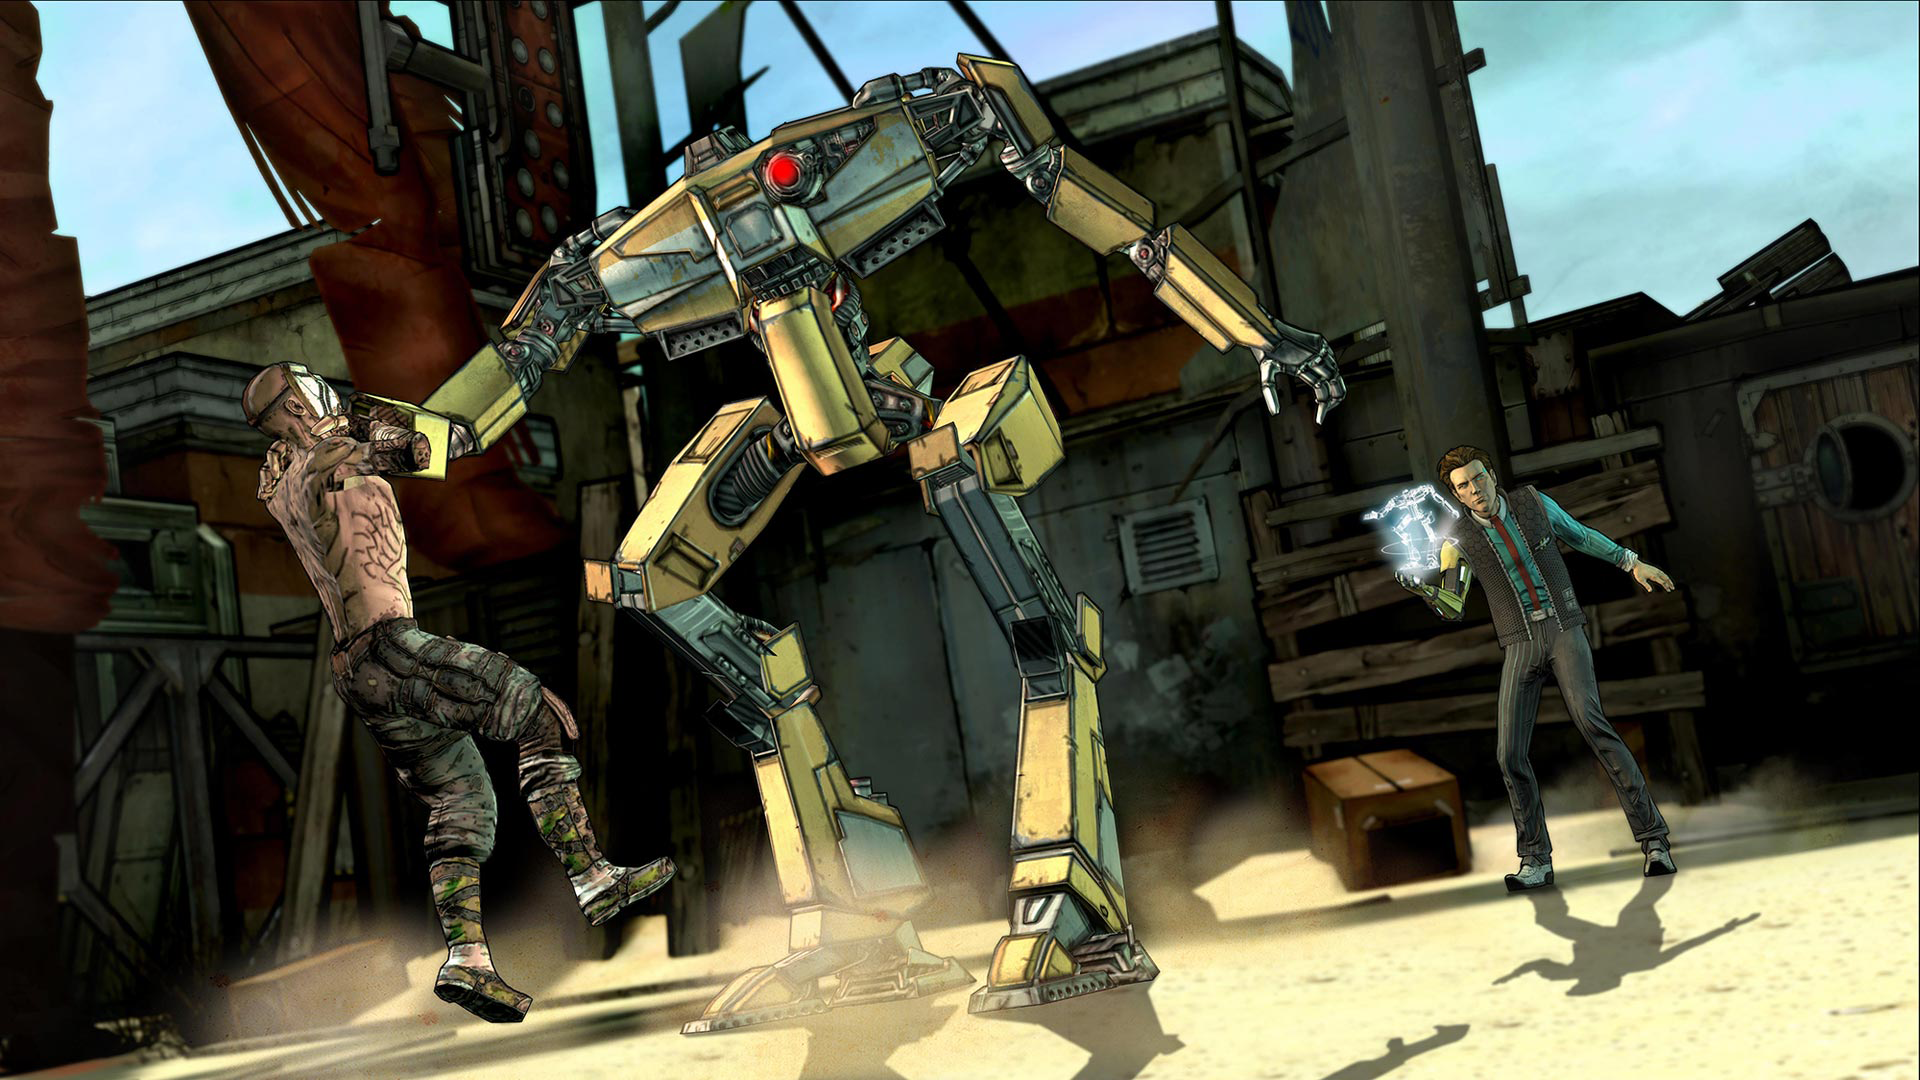 Tales from the Borderlands screenshot #6